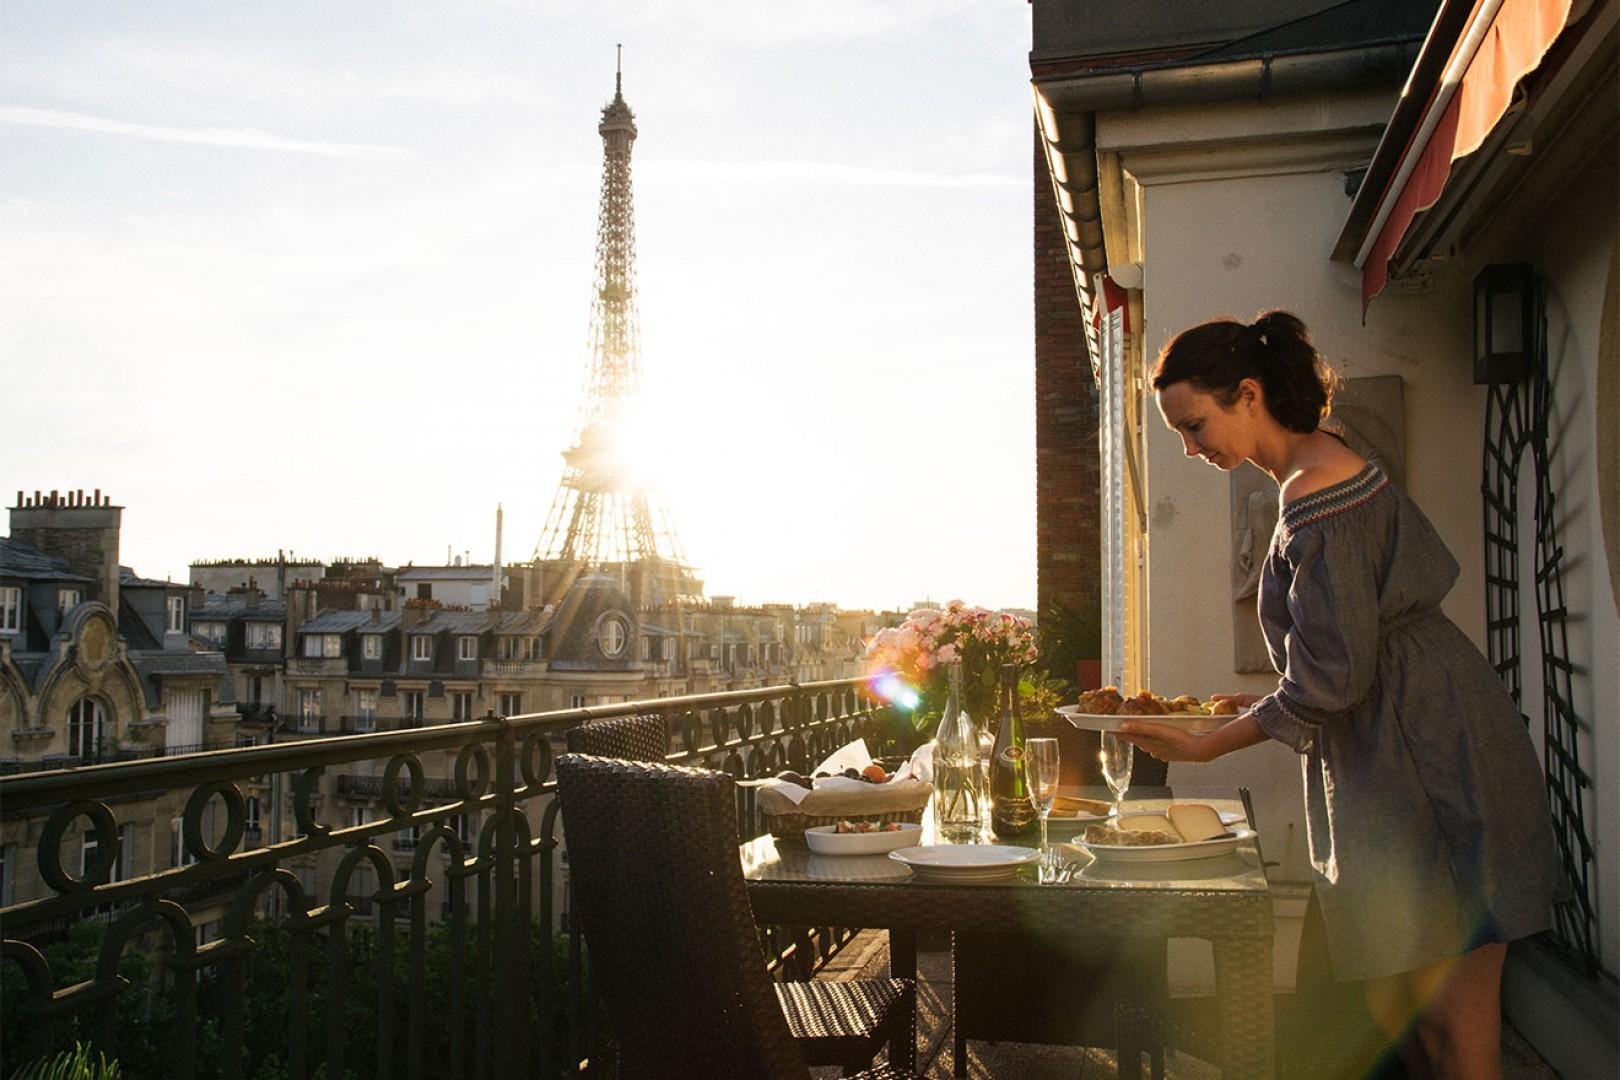 Prepare a romantic meal at home and enjoy this unbeatable view!